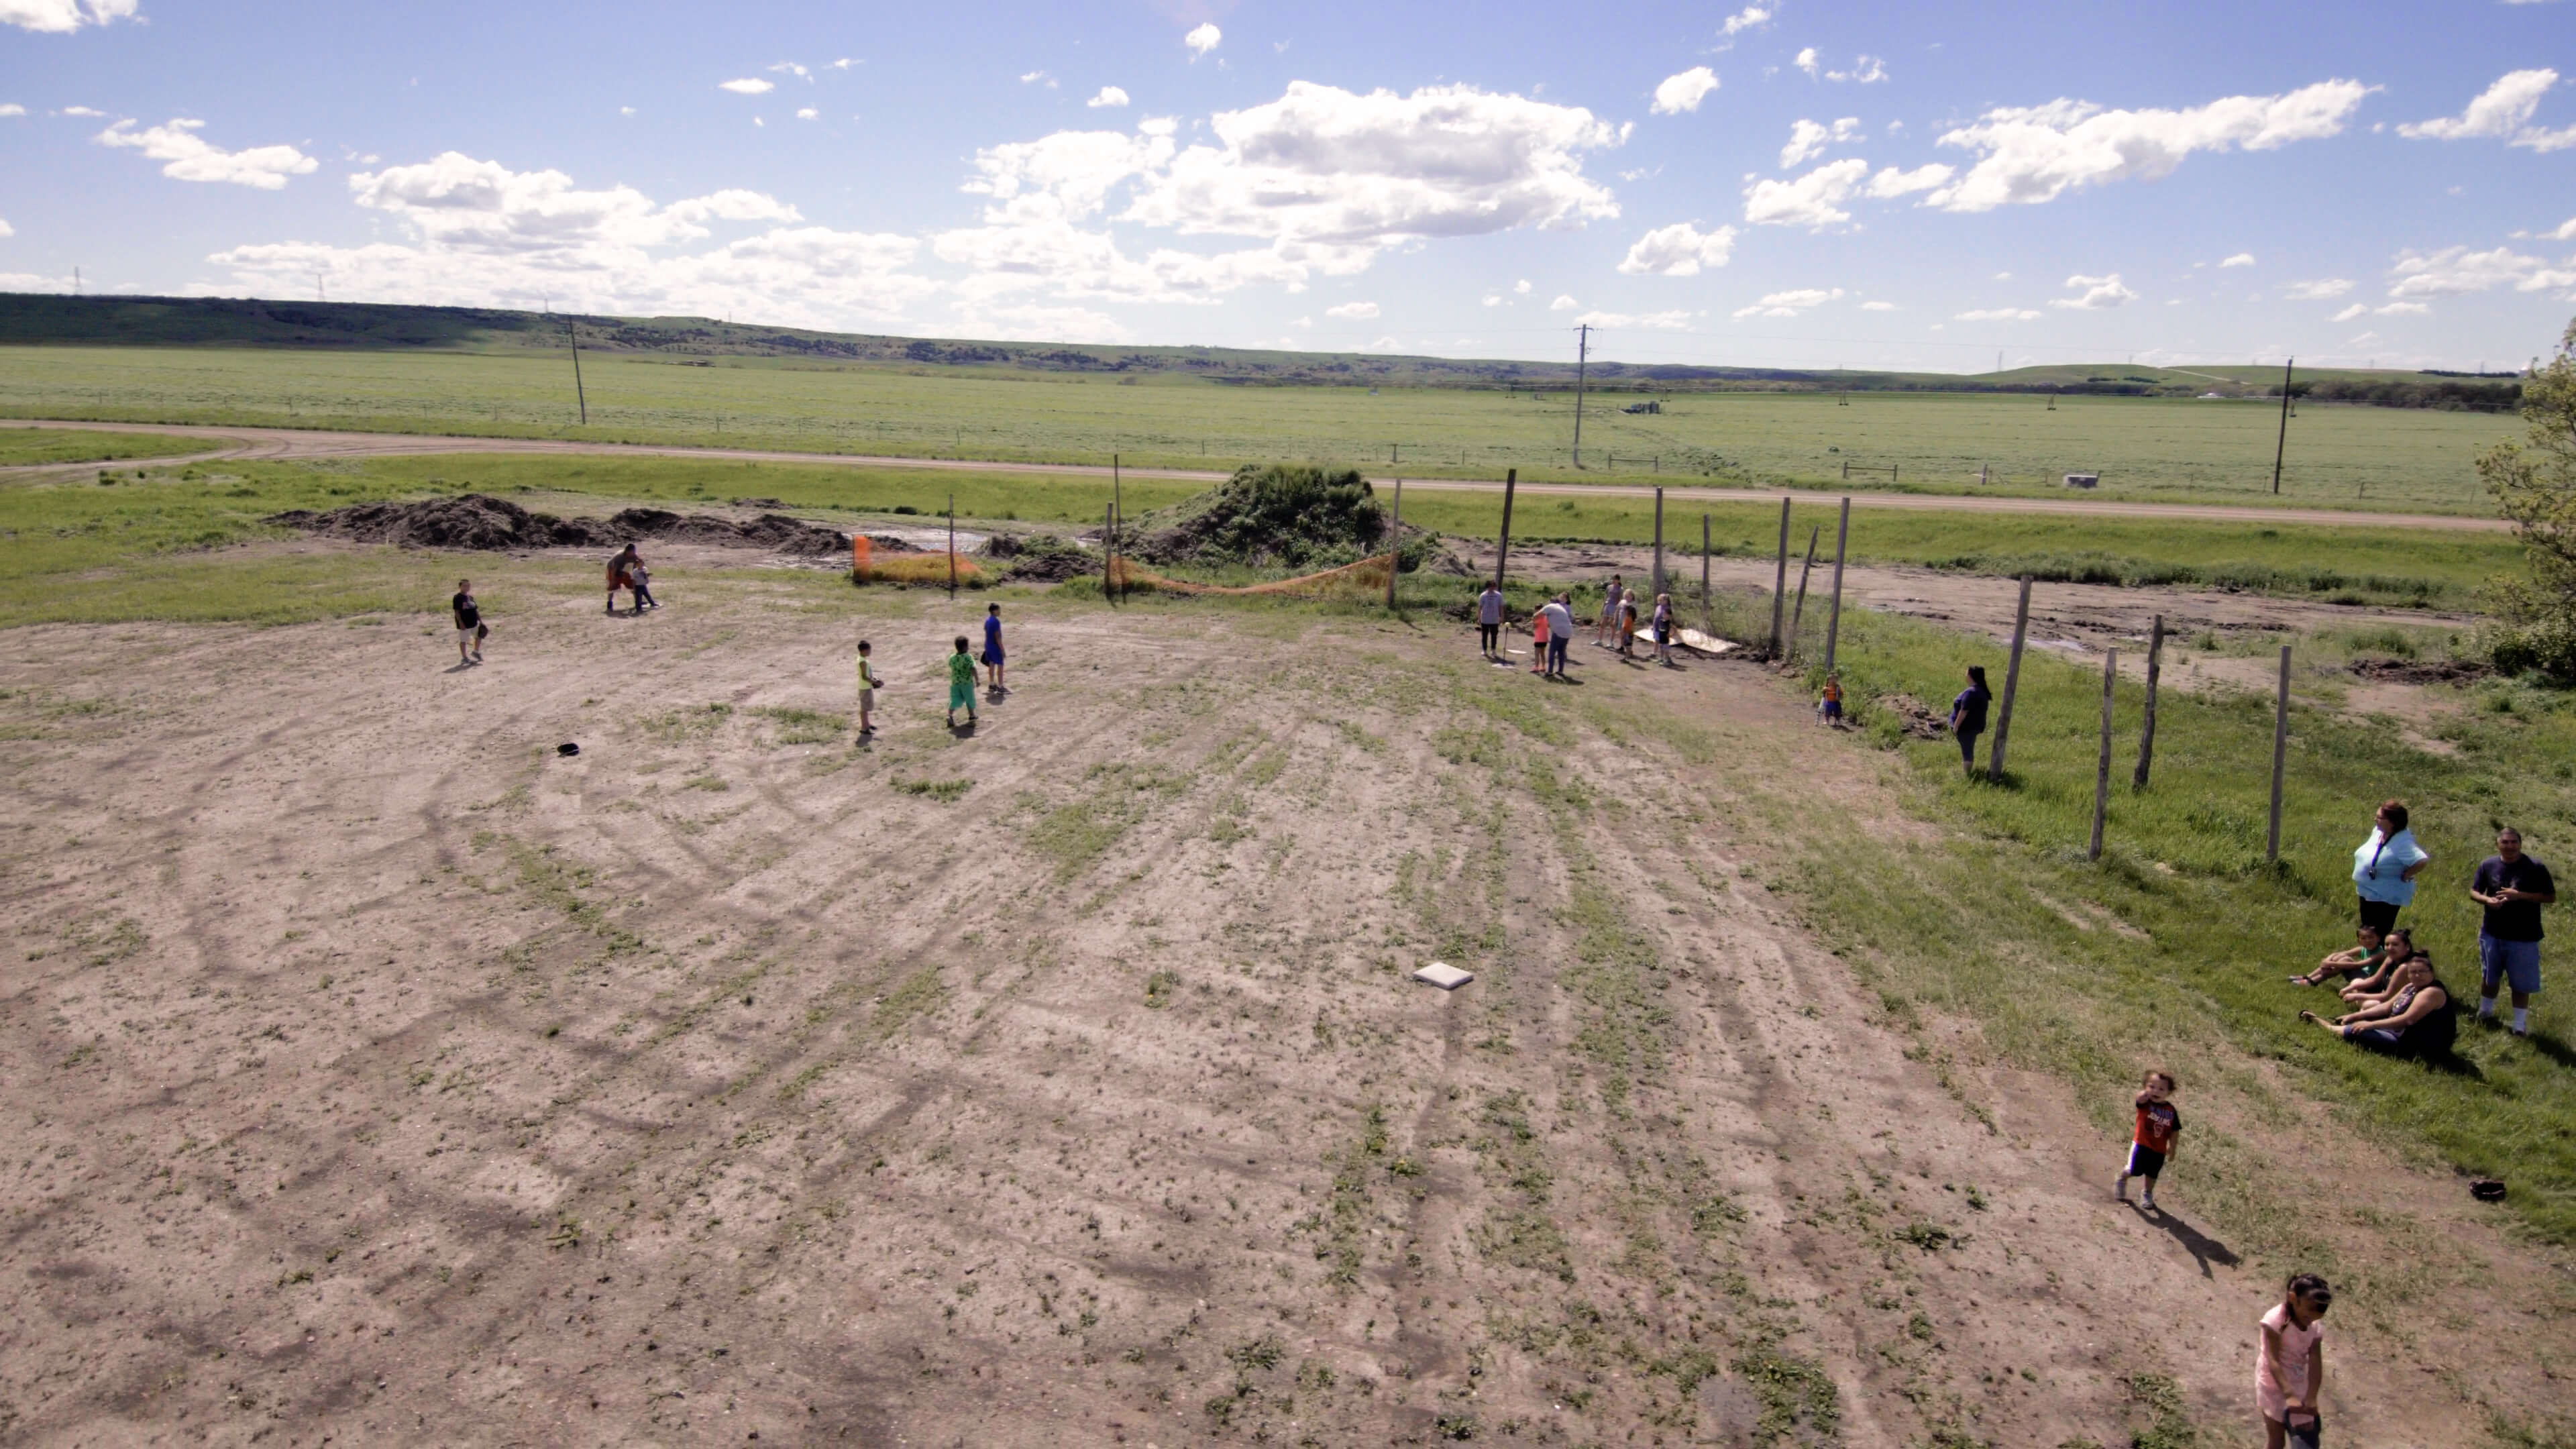 Summers on the Rez: Community through Baseball